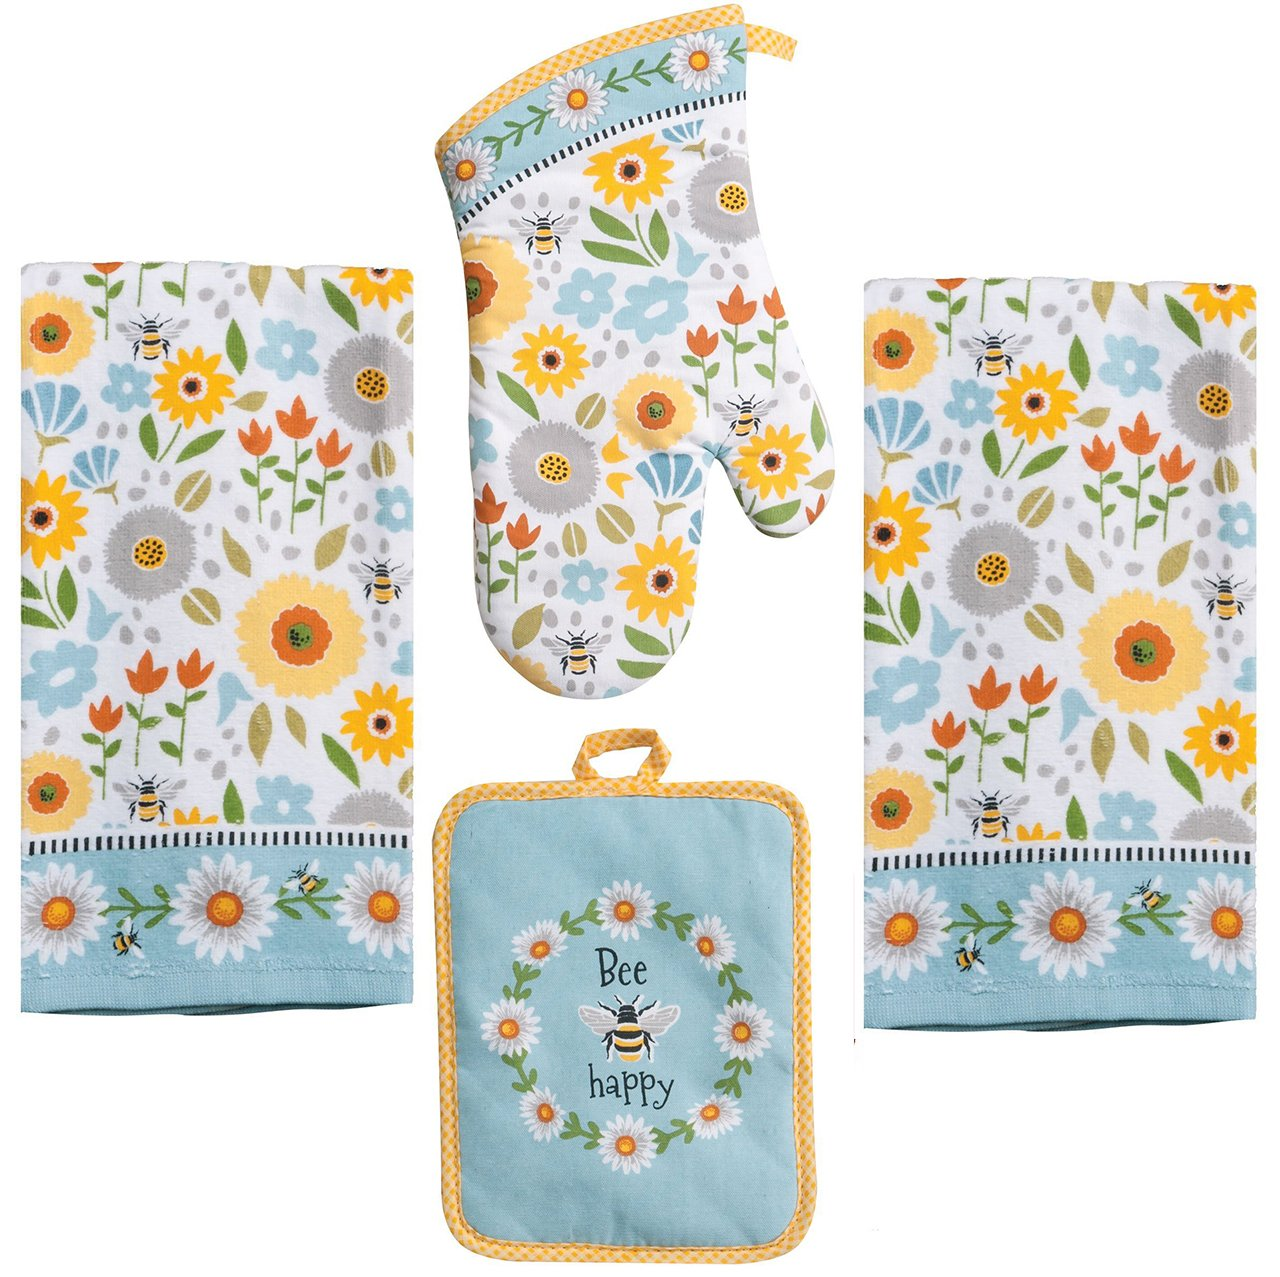 Kay Dee 4 Piece Kitchen Set - 2 Terry Towels, Oven Mitt, Potholder (Garden Bee)